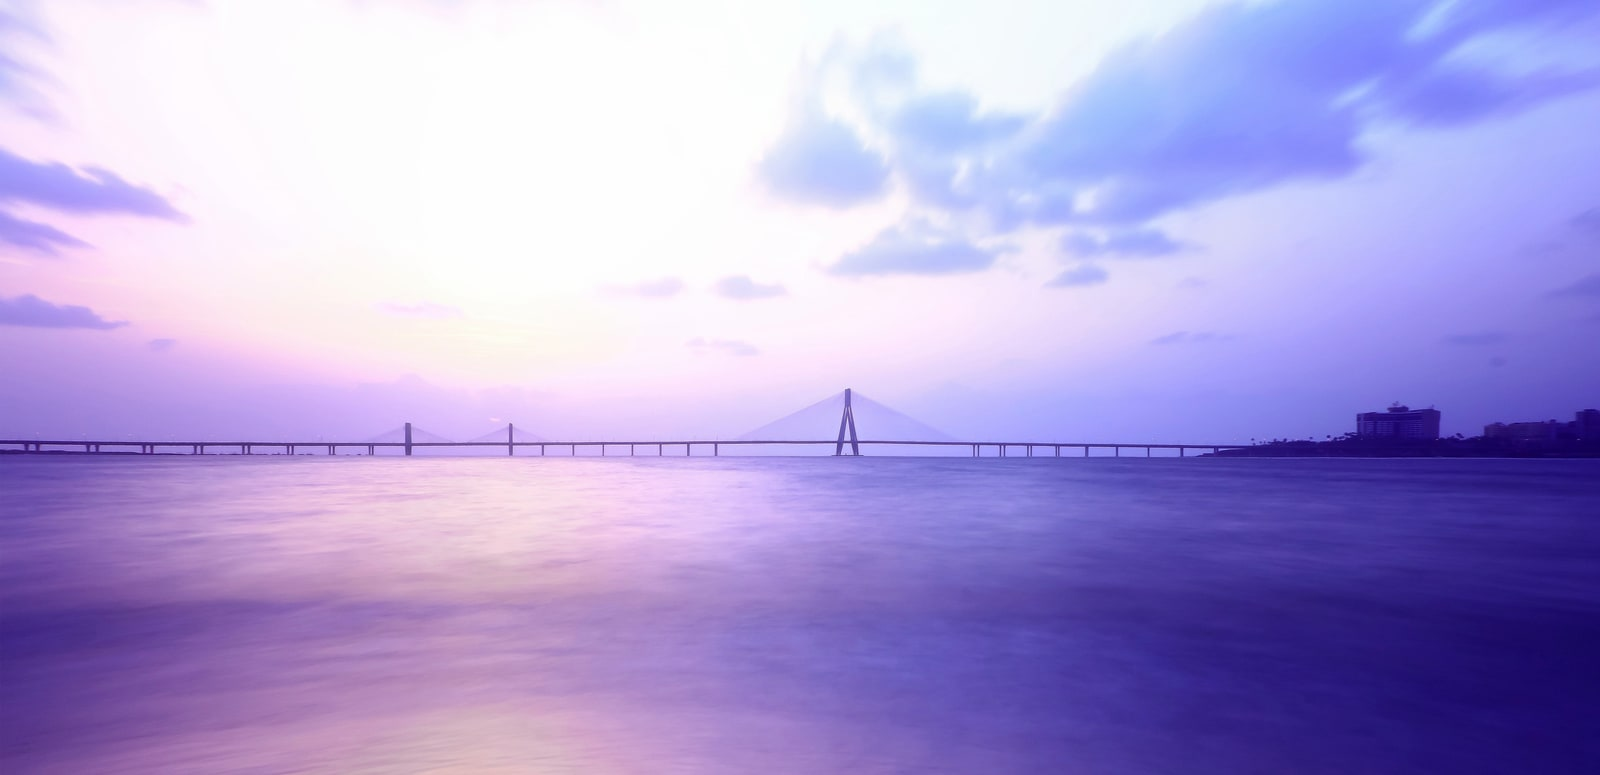 1489731676_shivaji_park_bridge_mumbai-hd.jpg